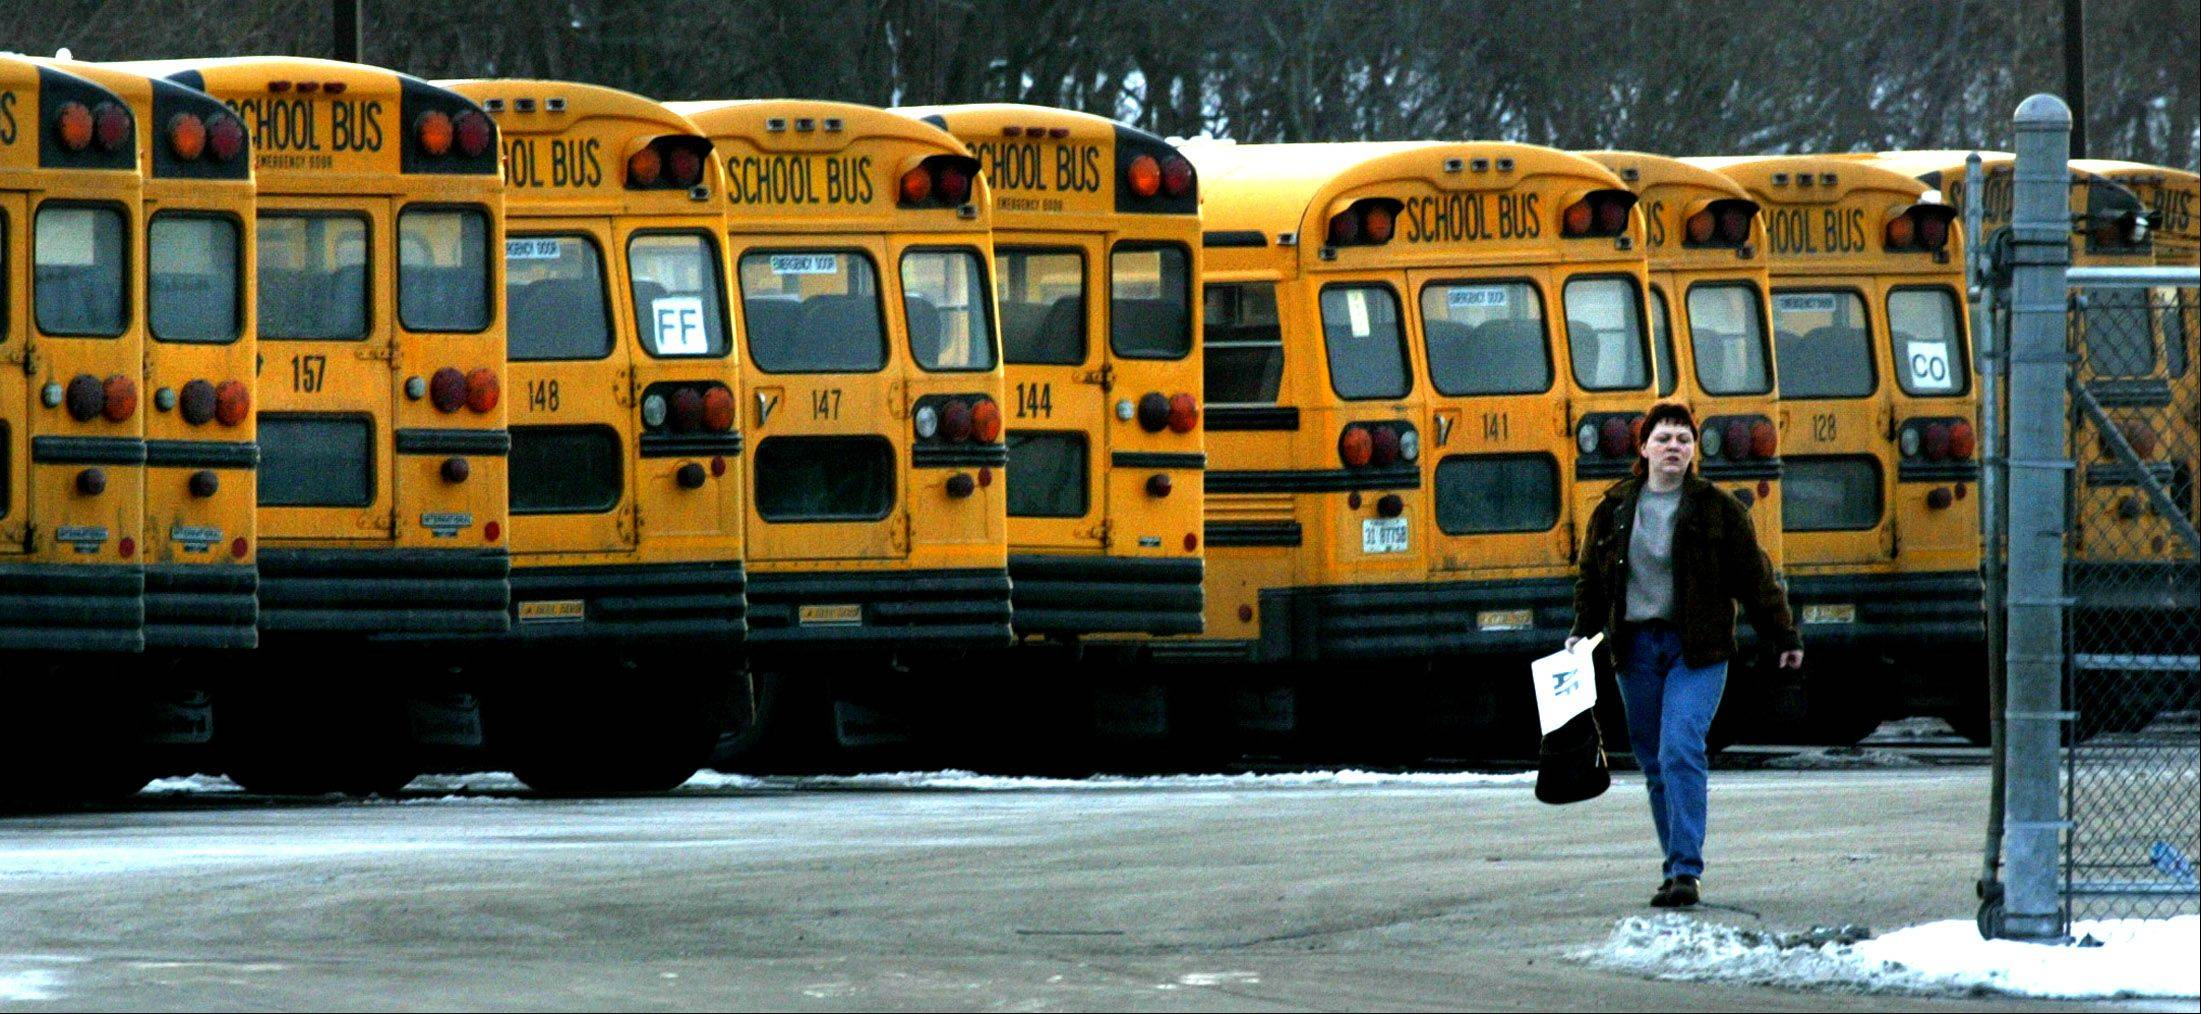 Officials from Community Unit District 300 have ordered an independent review of its school bus system, which some parents say is rife with broken equipment on the buses and subject to regular breakdowns. The district contracts with Warrenville-based Durham School Services to transport 15,000 children to school daily.